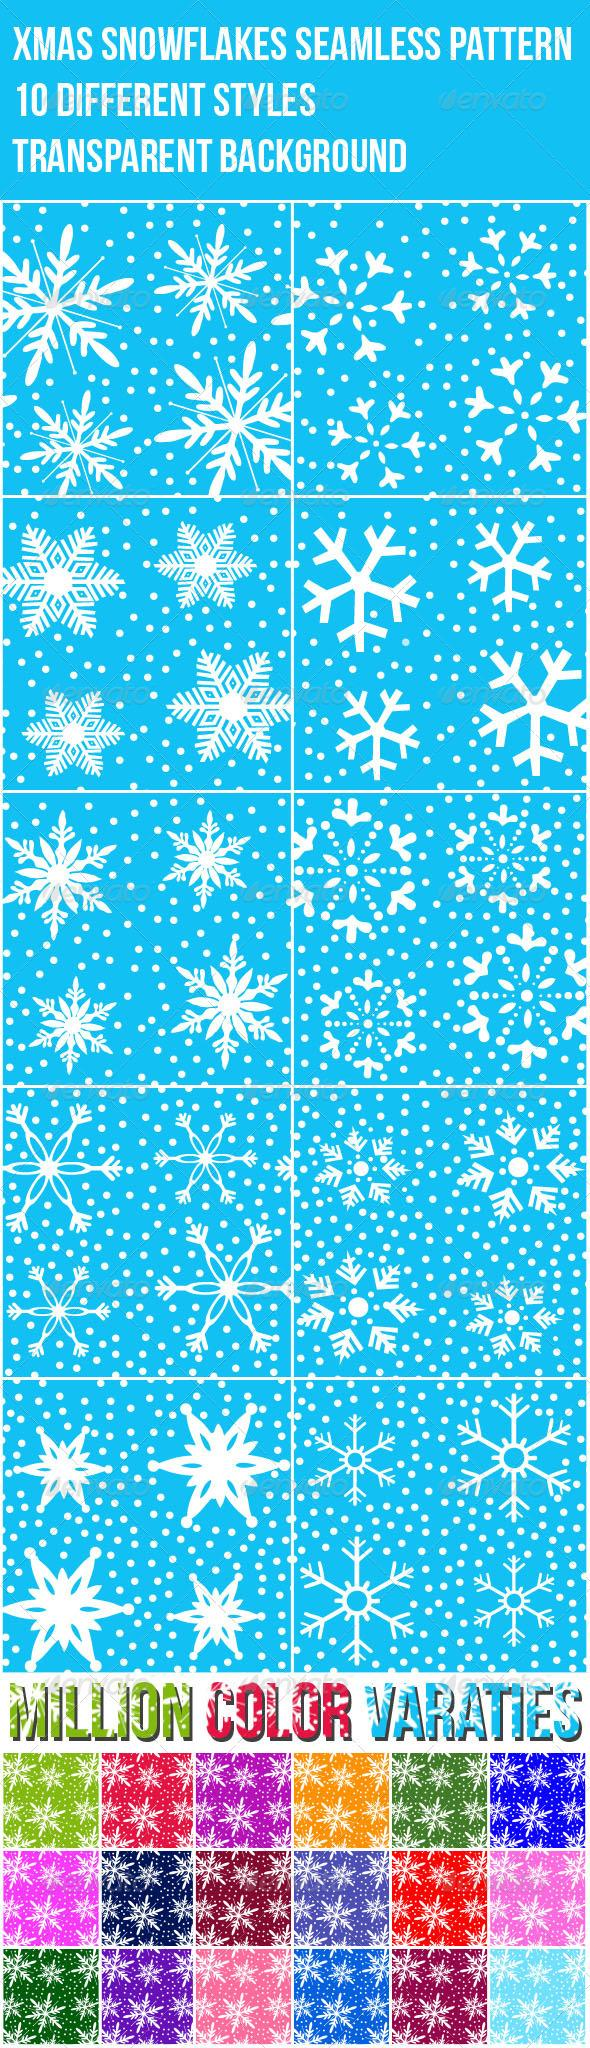 christmas patterns for photoshop free and premium pat files psddude